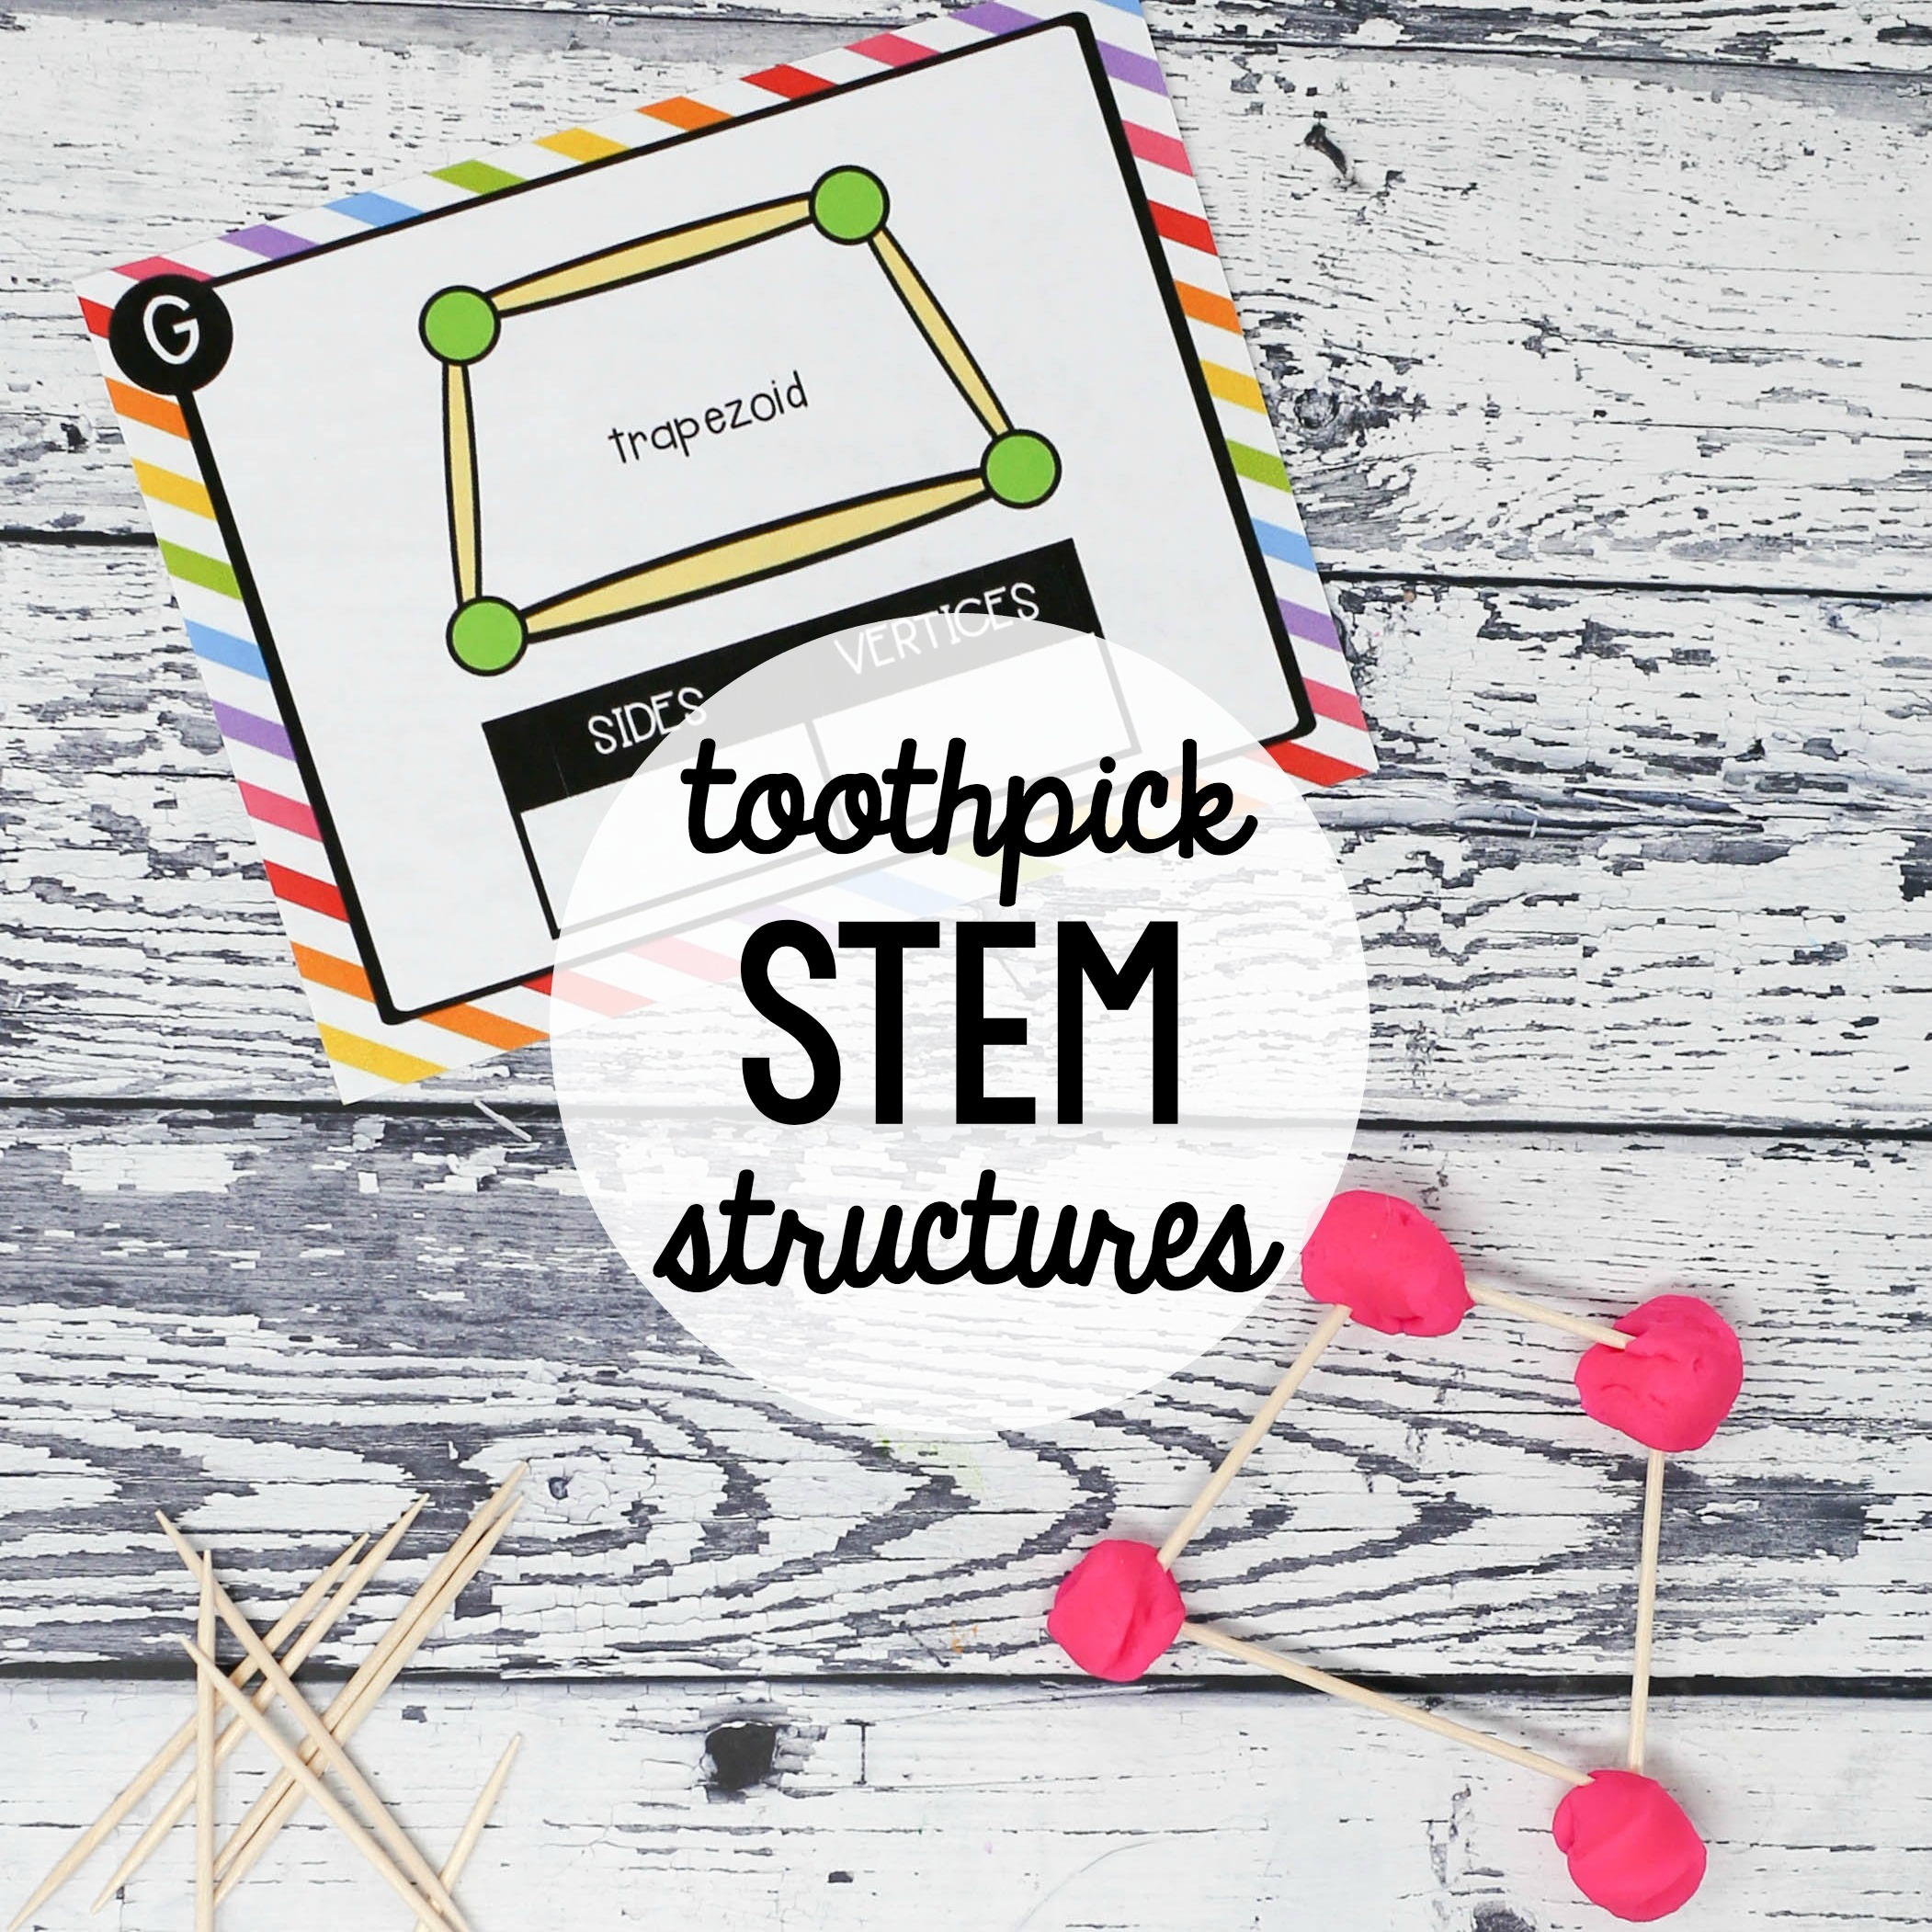 STEM Challenge: Build Toothpick Structures